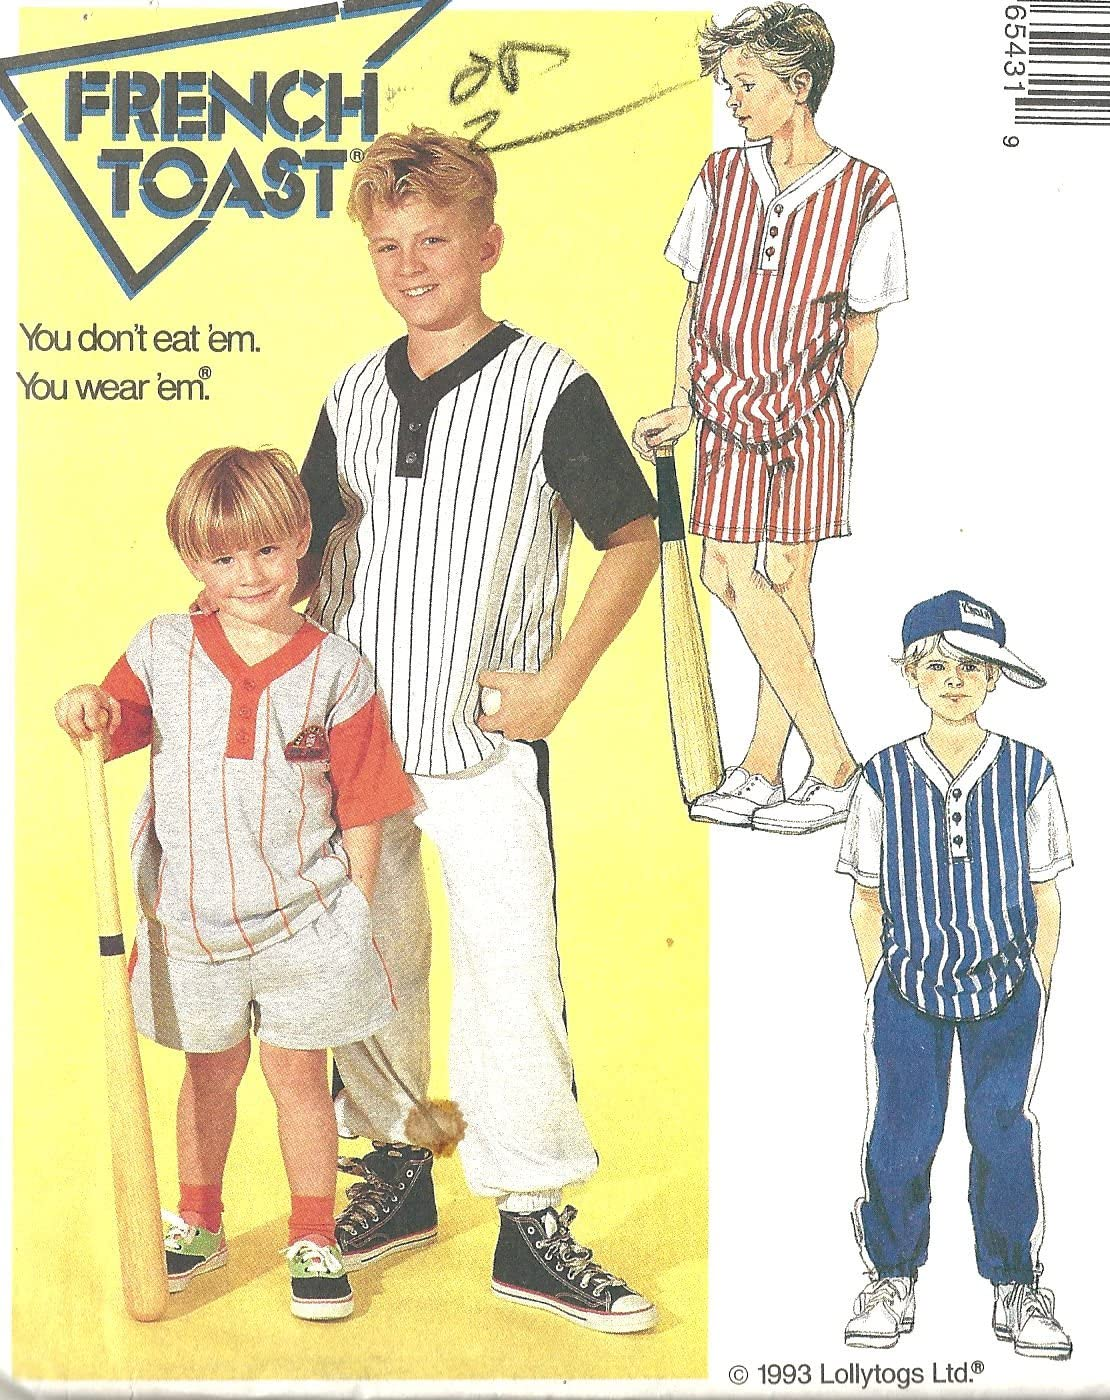 McCalls sewing pattern 6543 French Toast baseball separates - Child size 2-3-4 - boys - play clothes - casual - knit